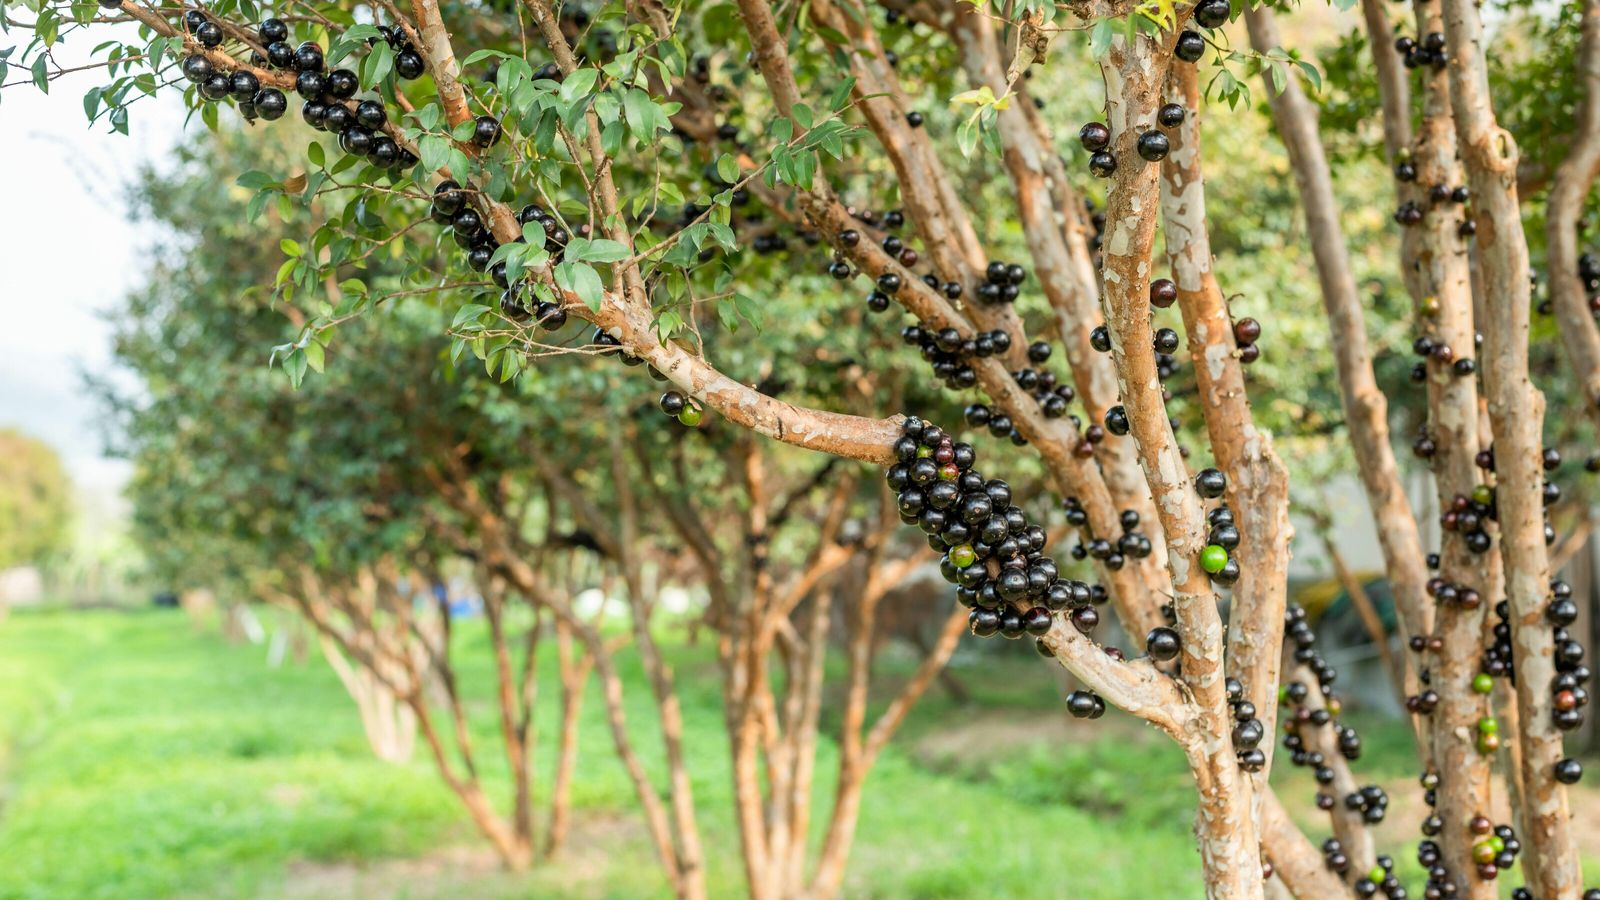 Jabuticaba berries grow by smothering the tree trunk rather than appearing among the leaves.